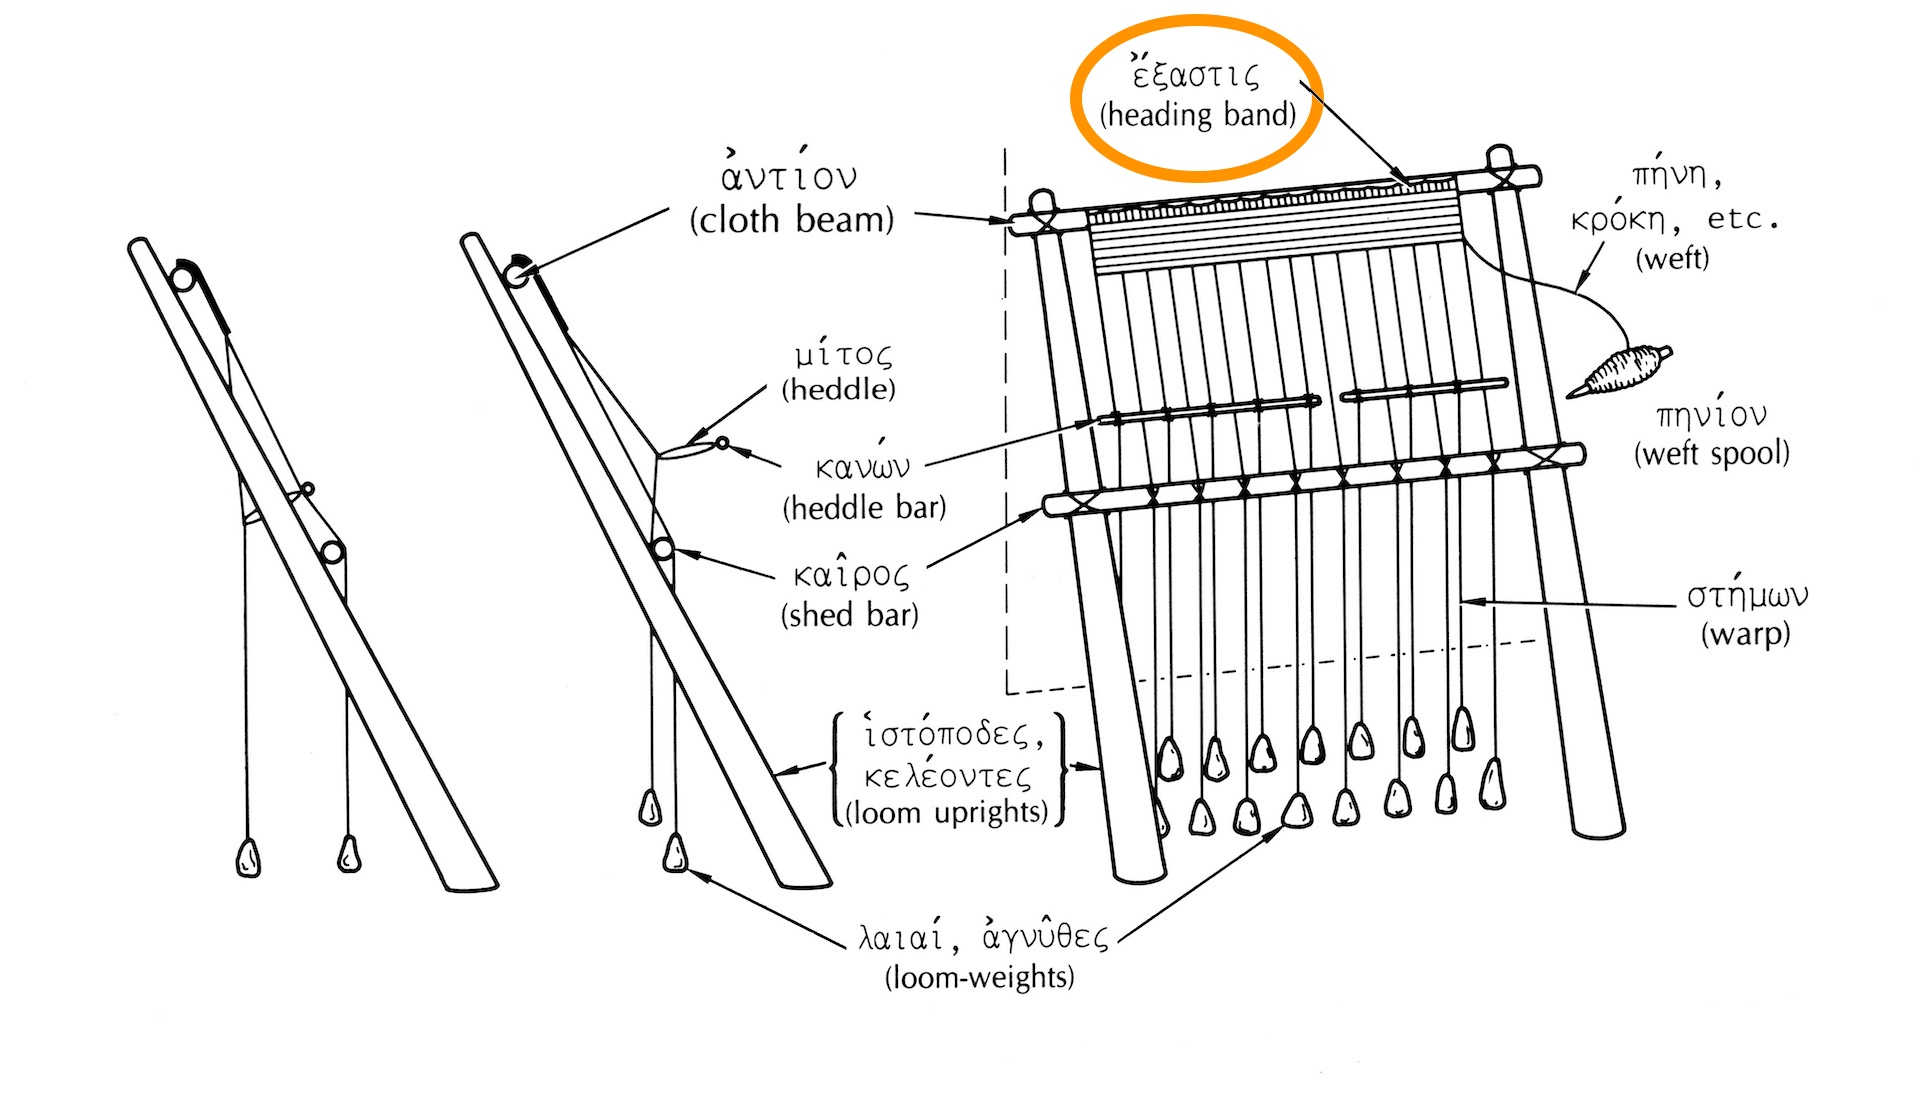 Line drawing of a reconstruction of an ancient Greek upright warp-weighted loom, with the label for the heading band highlighted.